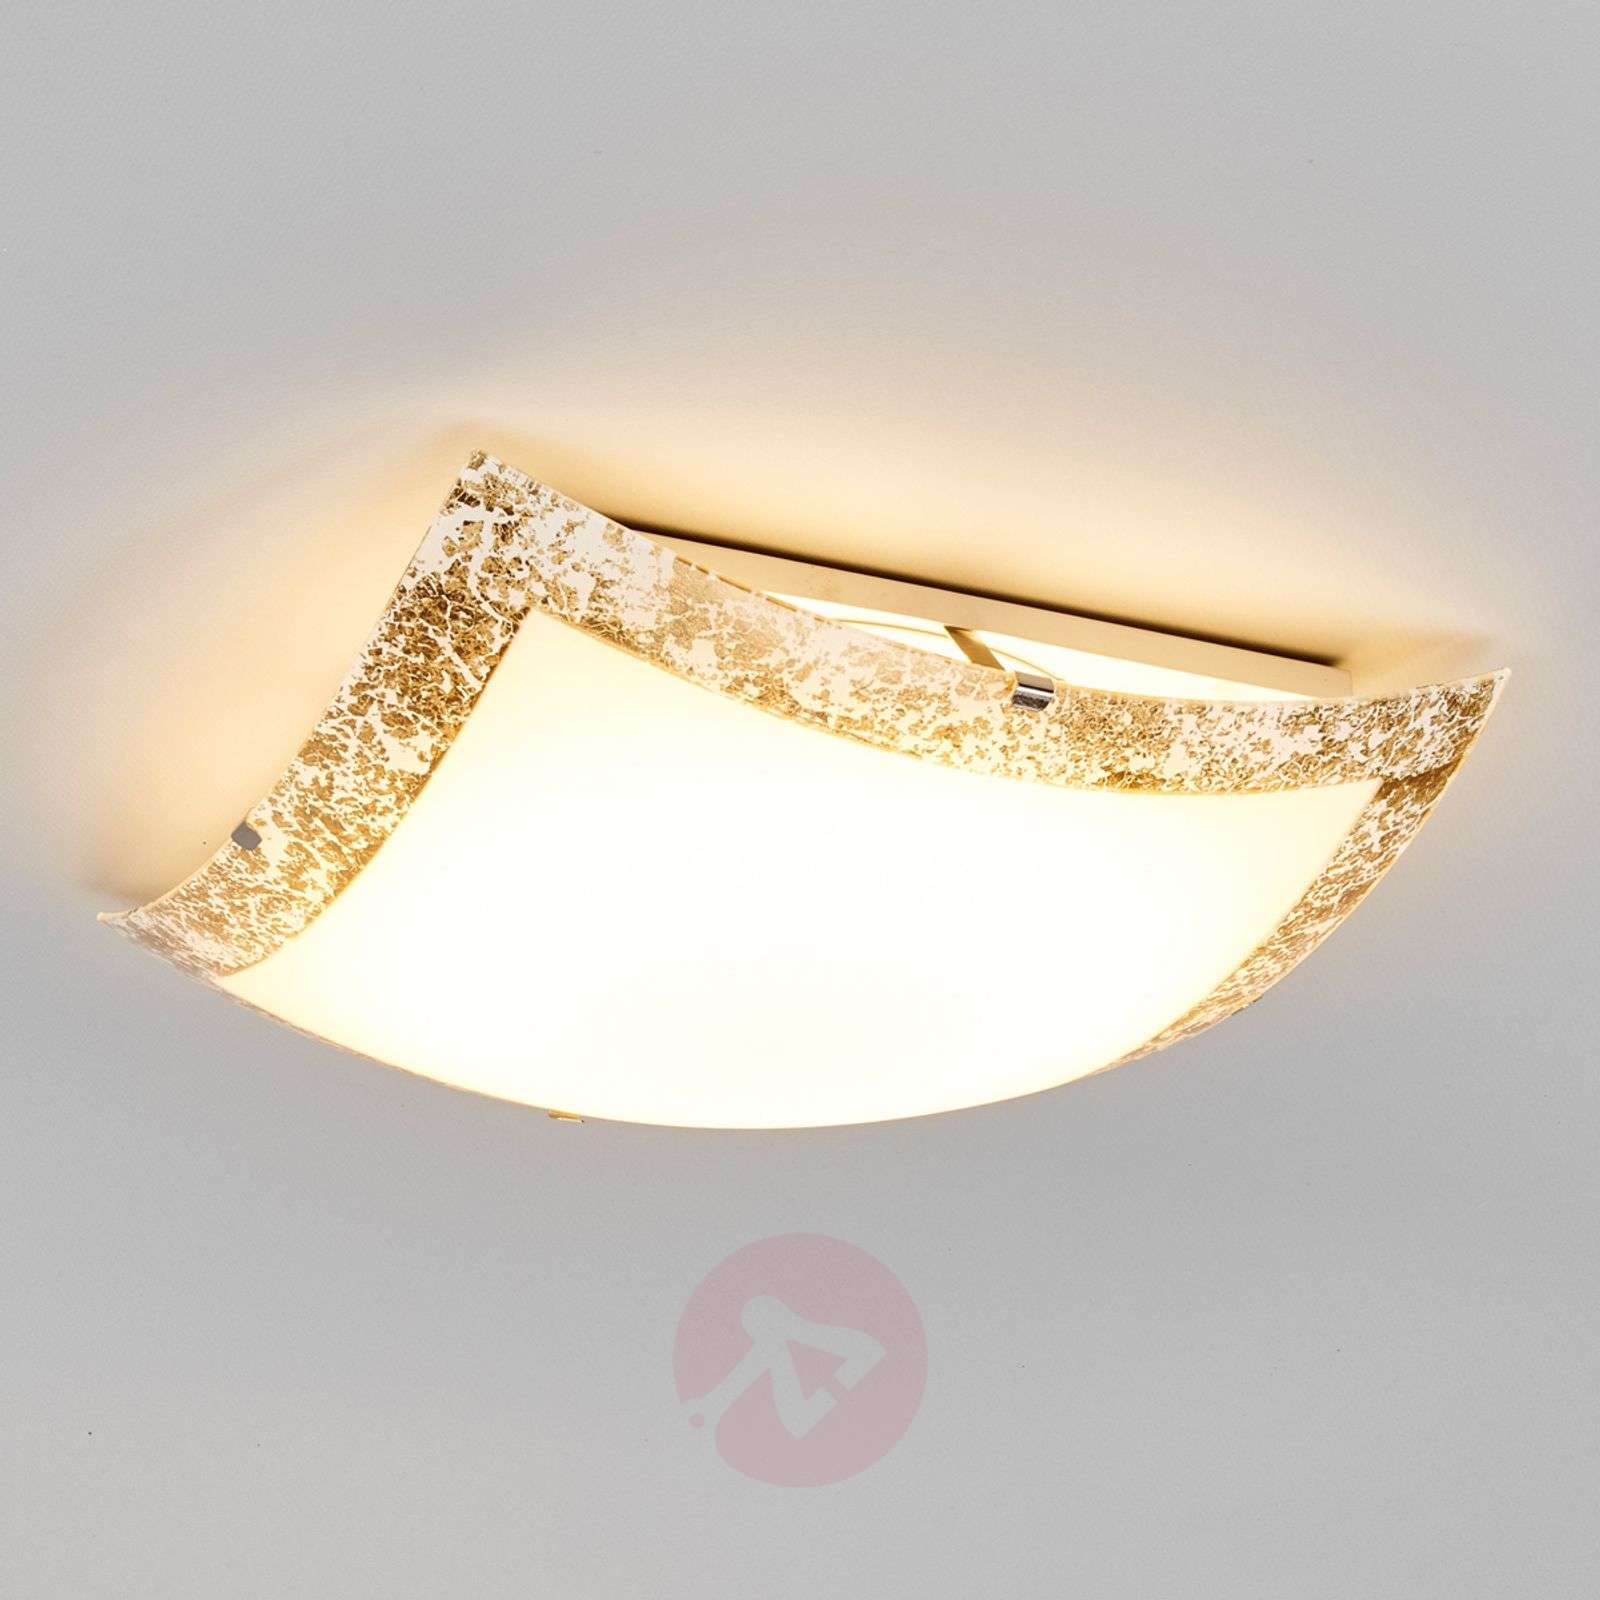 Mirella led ceiling light with a gold border